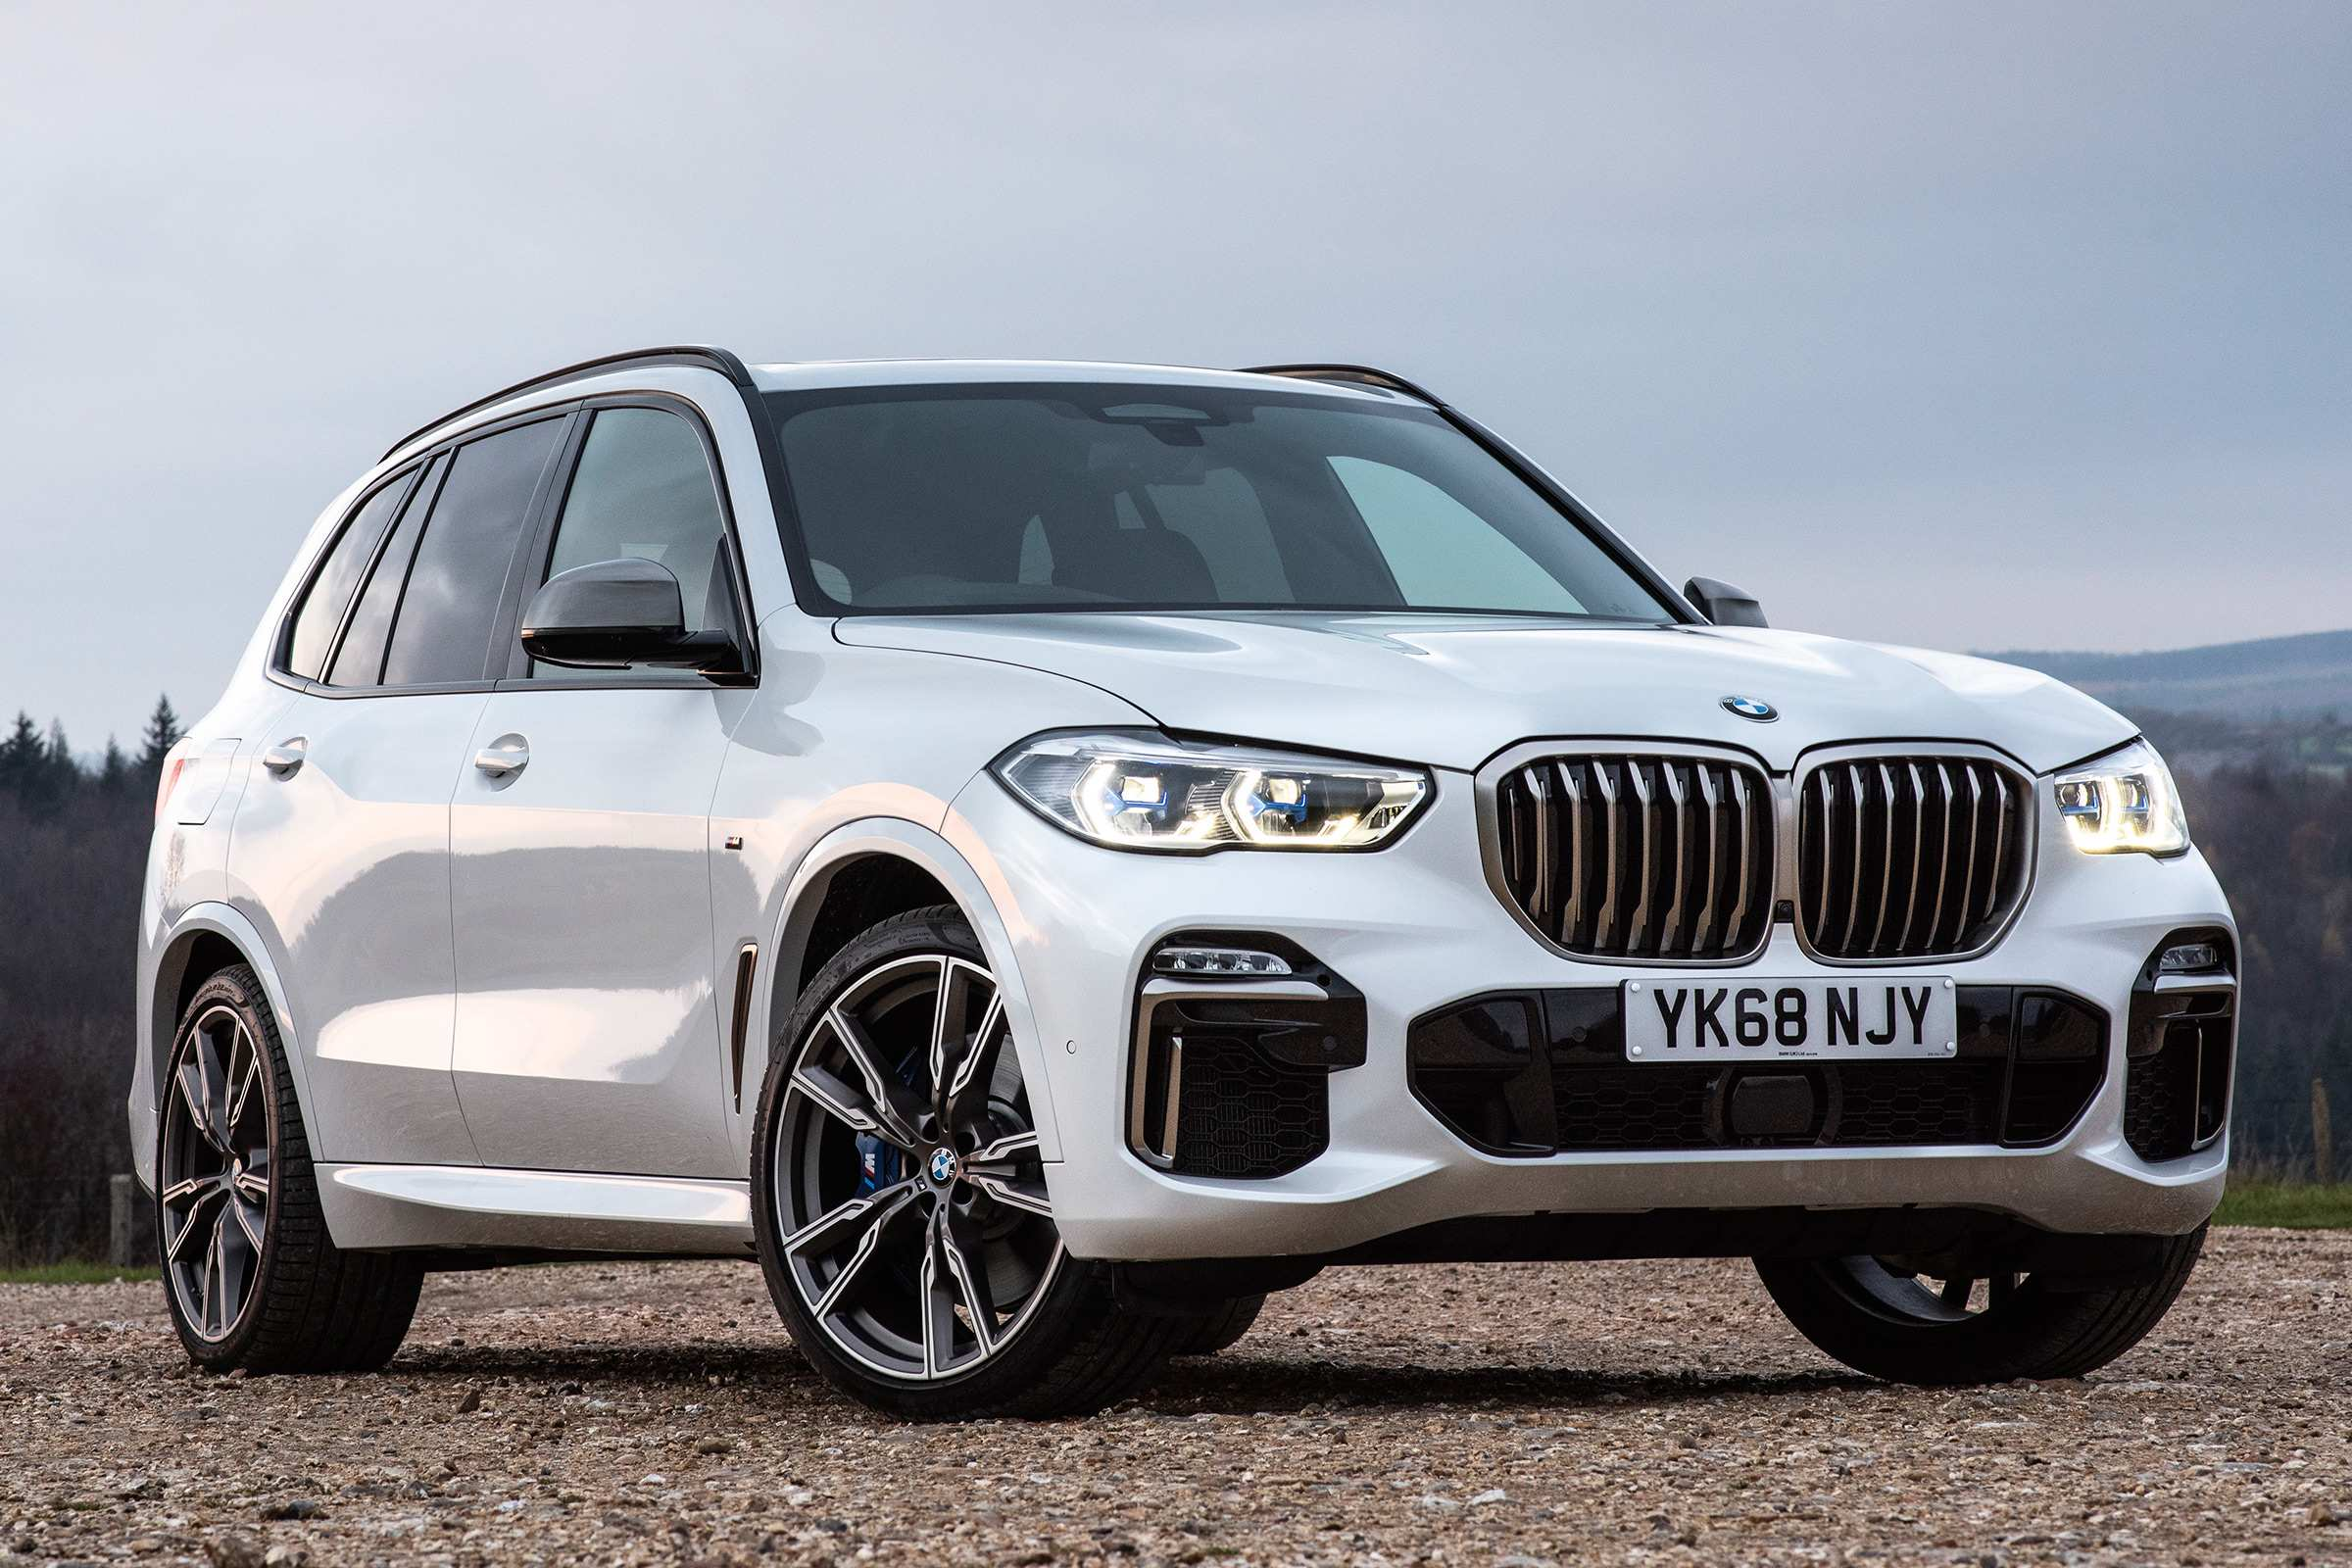 88 Best Review Bmw X5 2019 Performance and New Engine with Bmw X5 2019